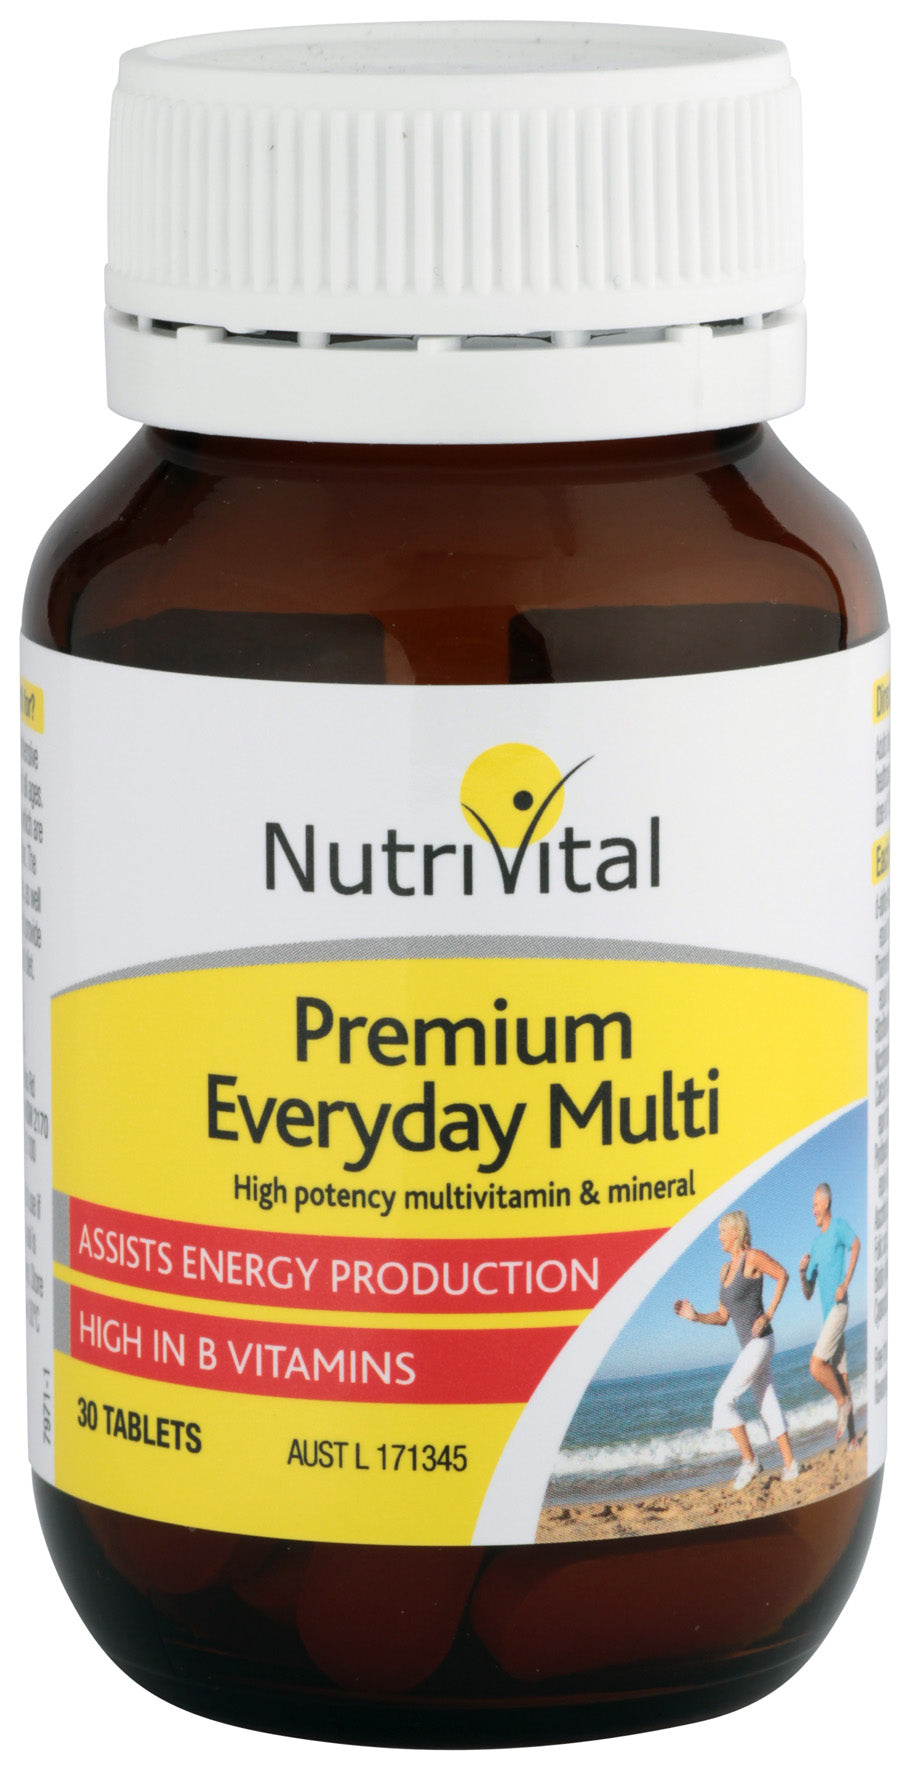 NutriVital Premium Everyday Multi - 60 Tablets